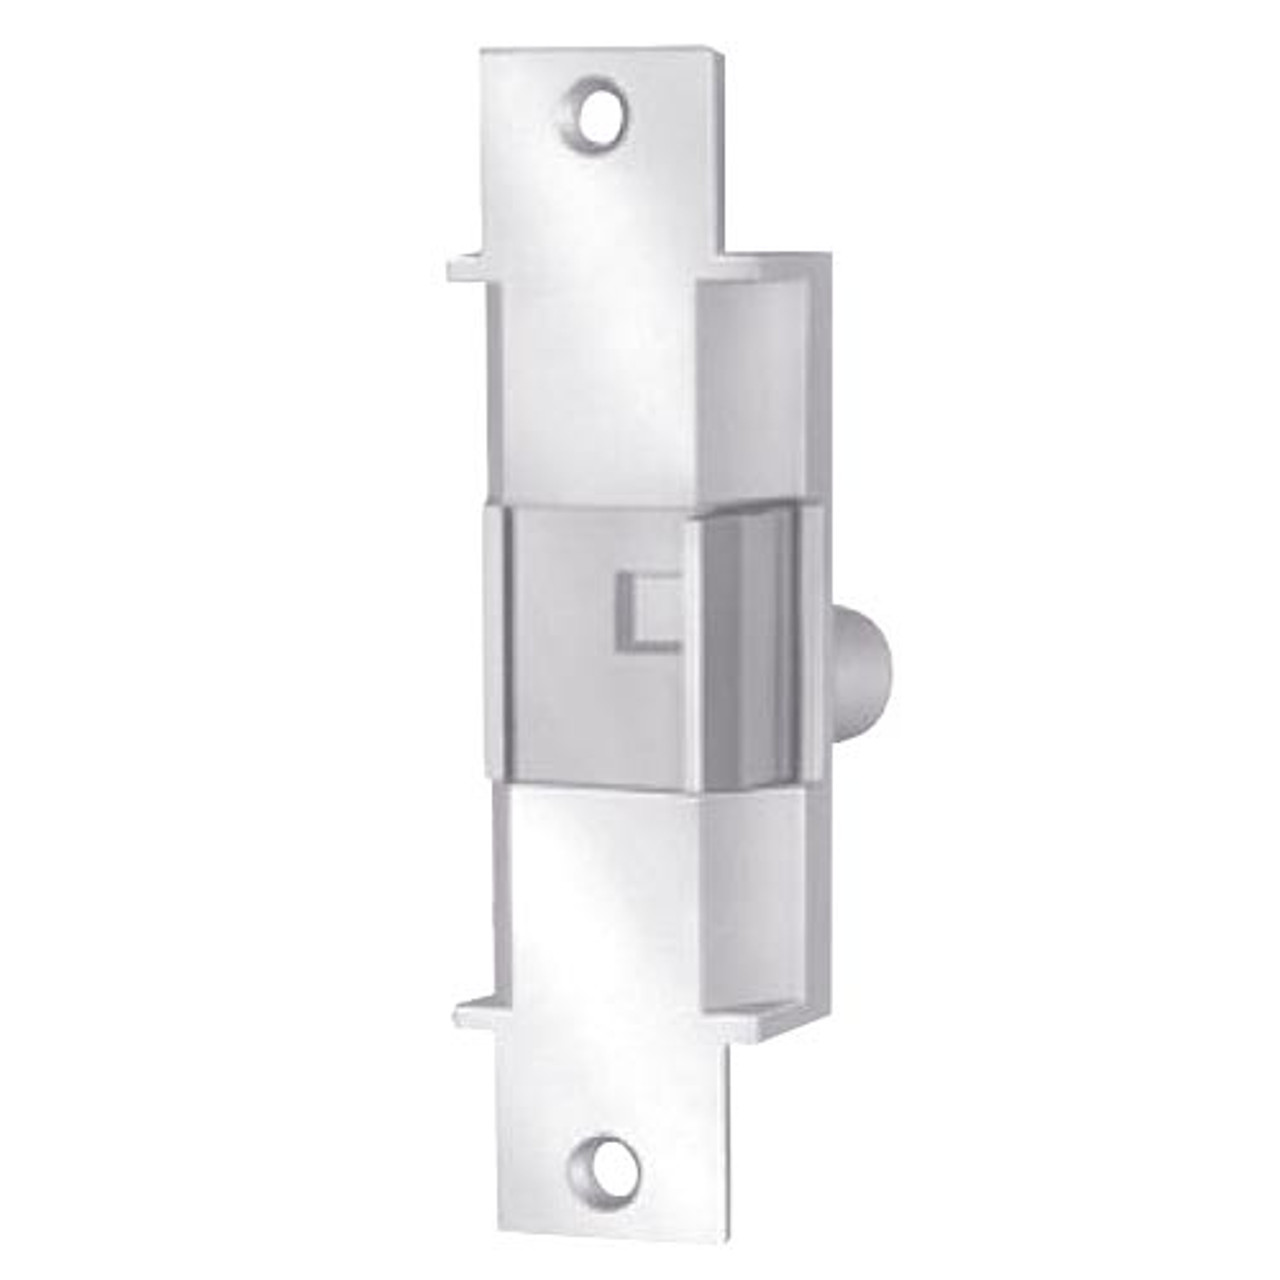 6221-DS-LC-24VDC-US32 Von Duprin Electric Strike in Bright Stainless Steel Finish